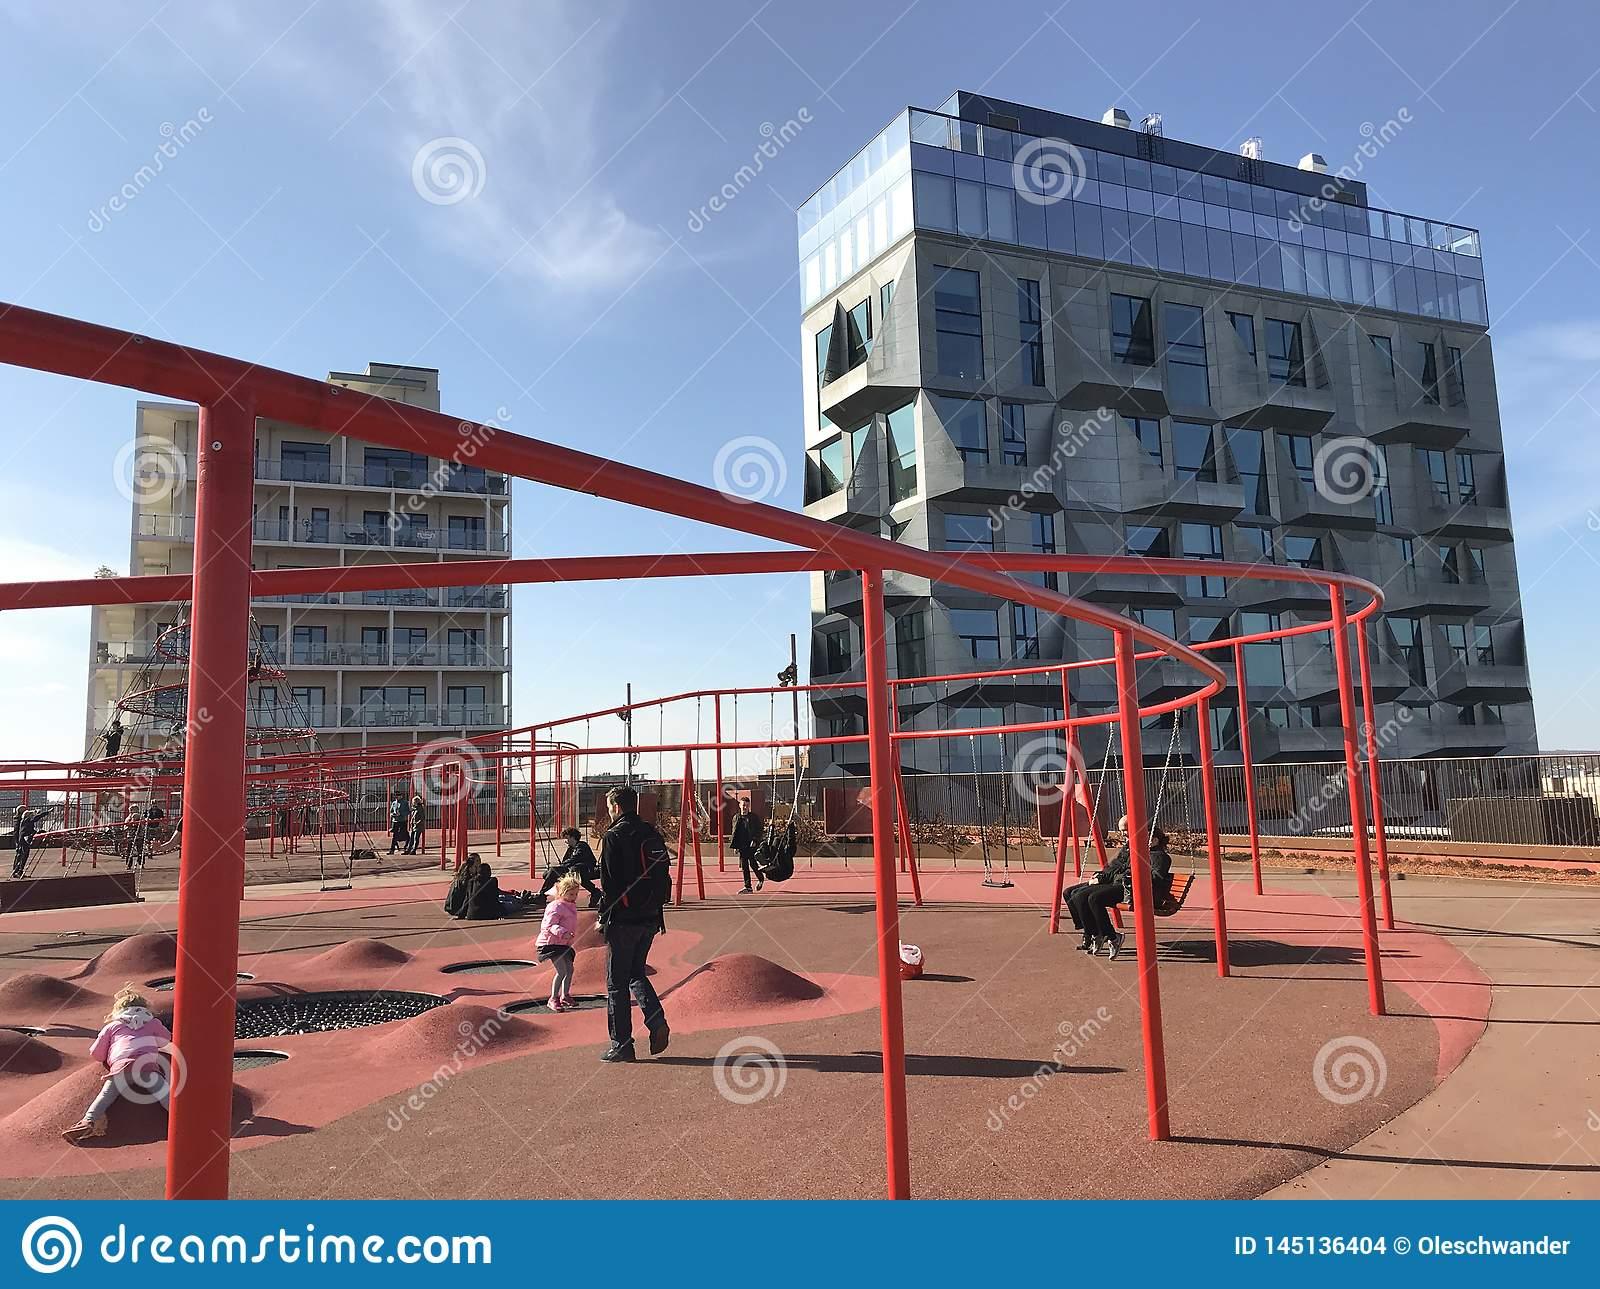 Modern playground with lots of activities and modern high rise buildings in the background.